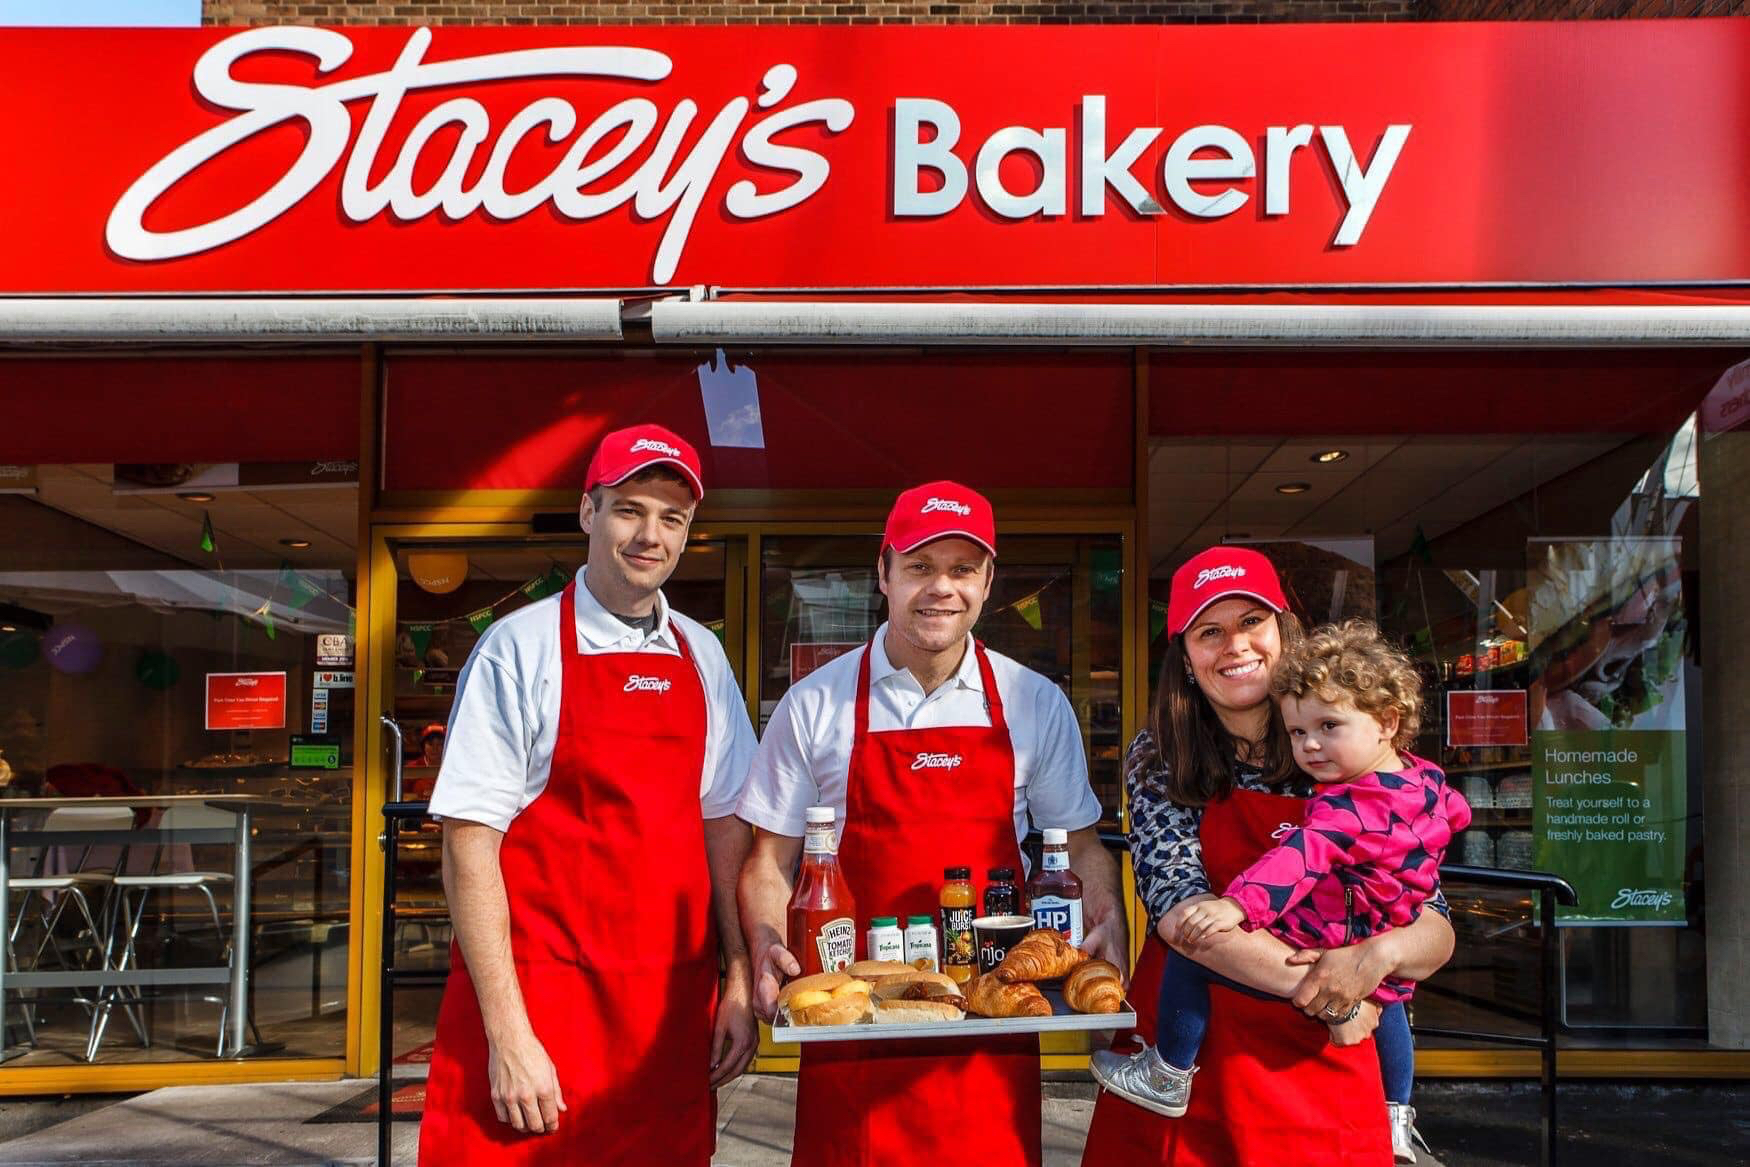 Derbyshire Bakery Offers Month of Free Cake for Covid Community Heroes